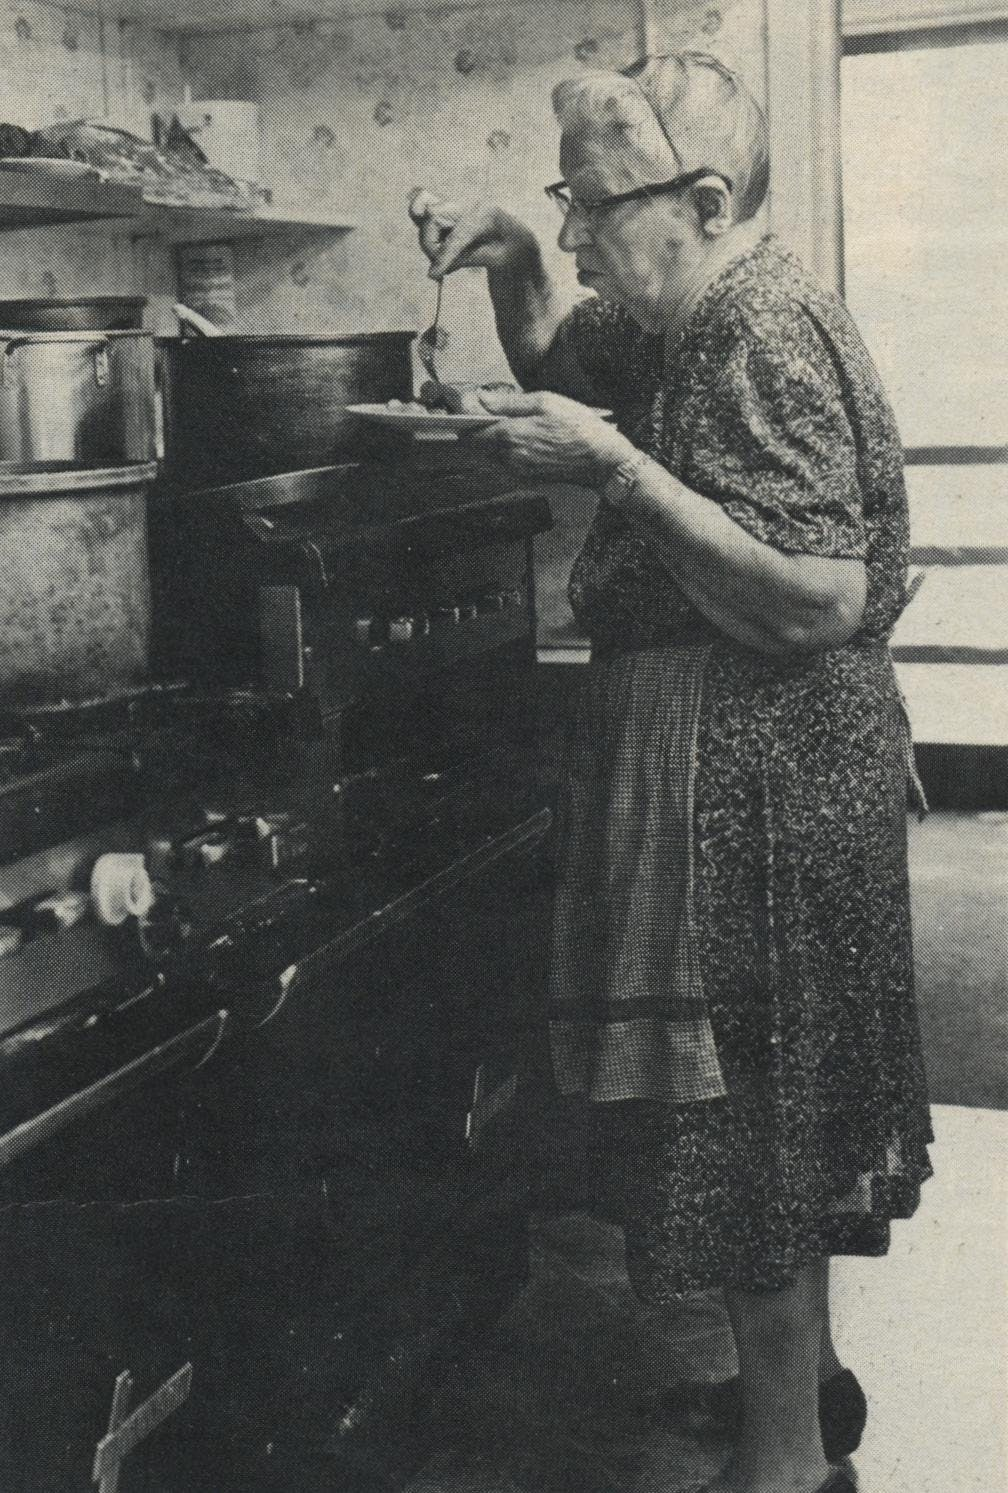 Mom's mom: Mrs. Carleton's favorite customer and critic is her own mother, who samples the Aggies' noontime fare.